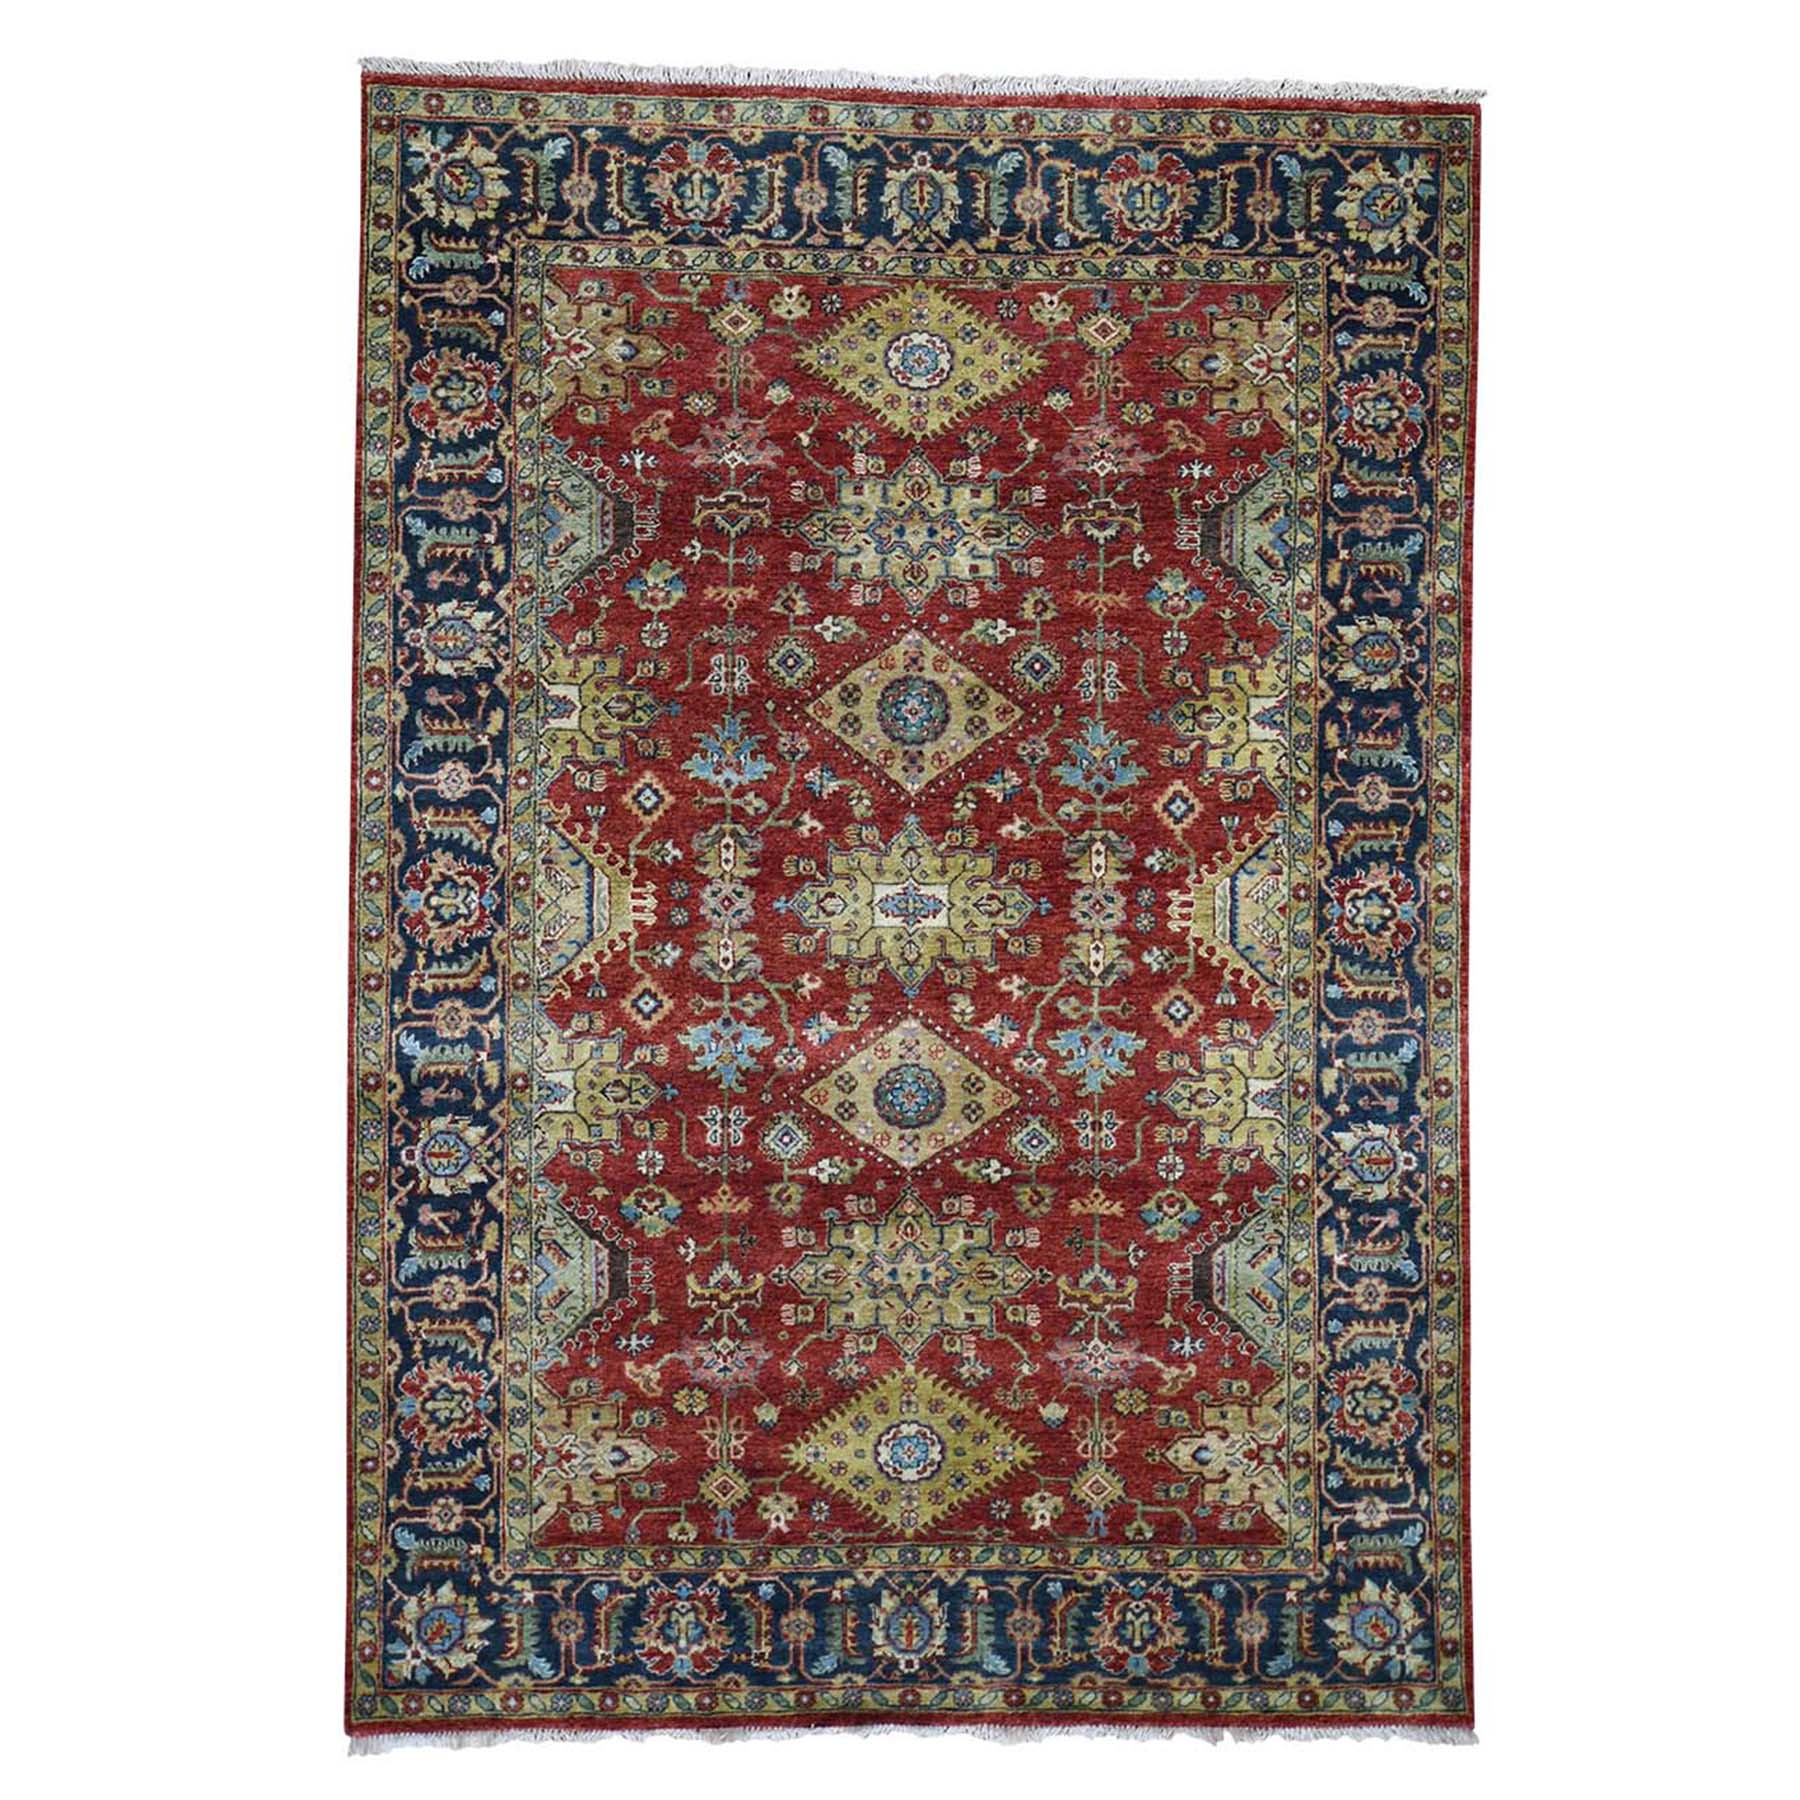 "6'X8'9"" Red Karajeh Design Pure Wool Hand-Knotted Oriental Rug moad6b97"